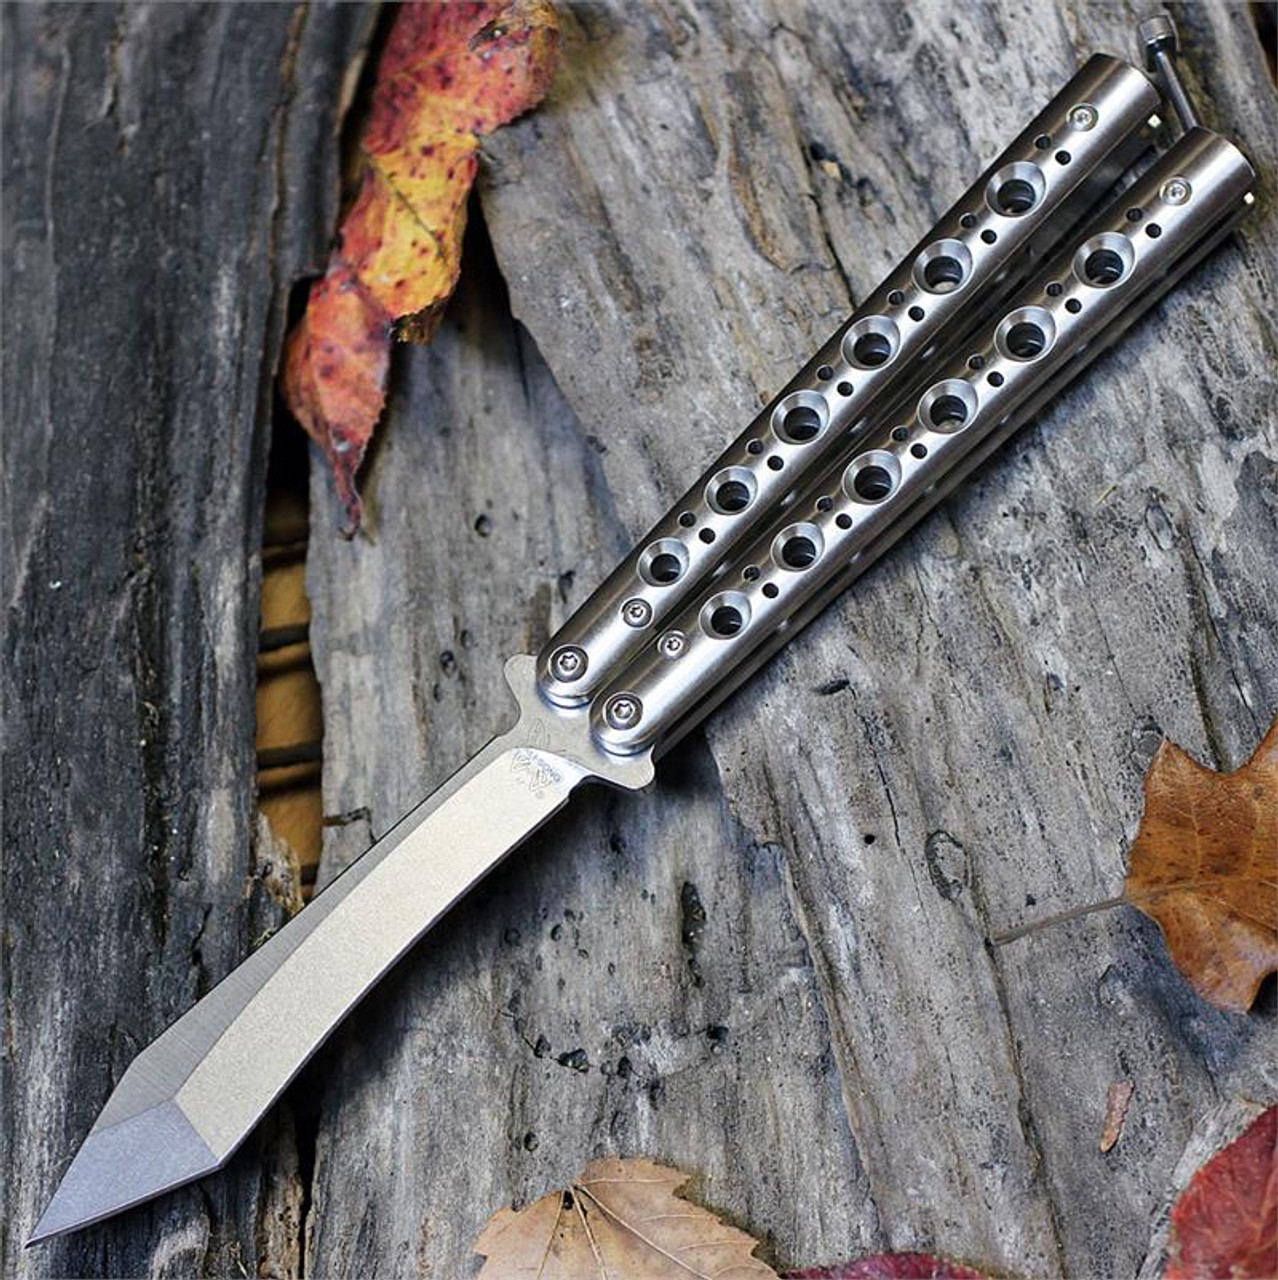 Benchmade Bali Song 67 4 25 In D2 Blade Steel Stainless Steel Handle Butterfly Knife